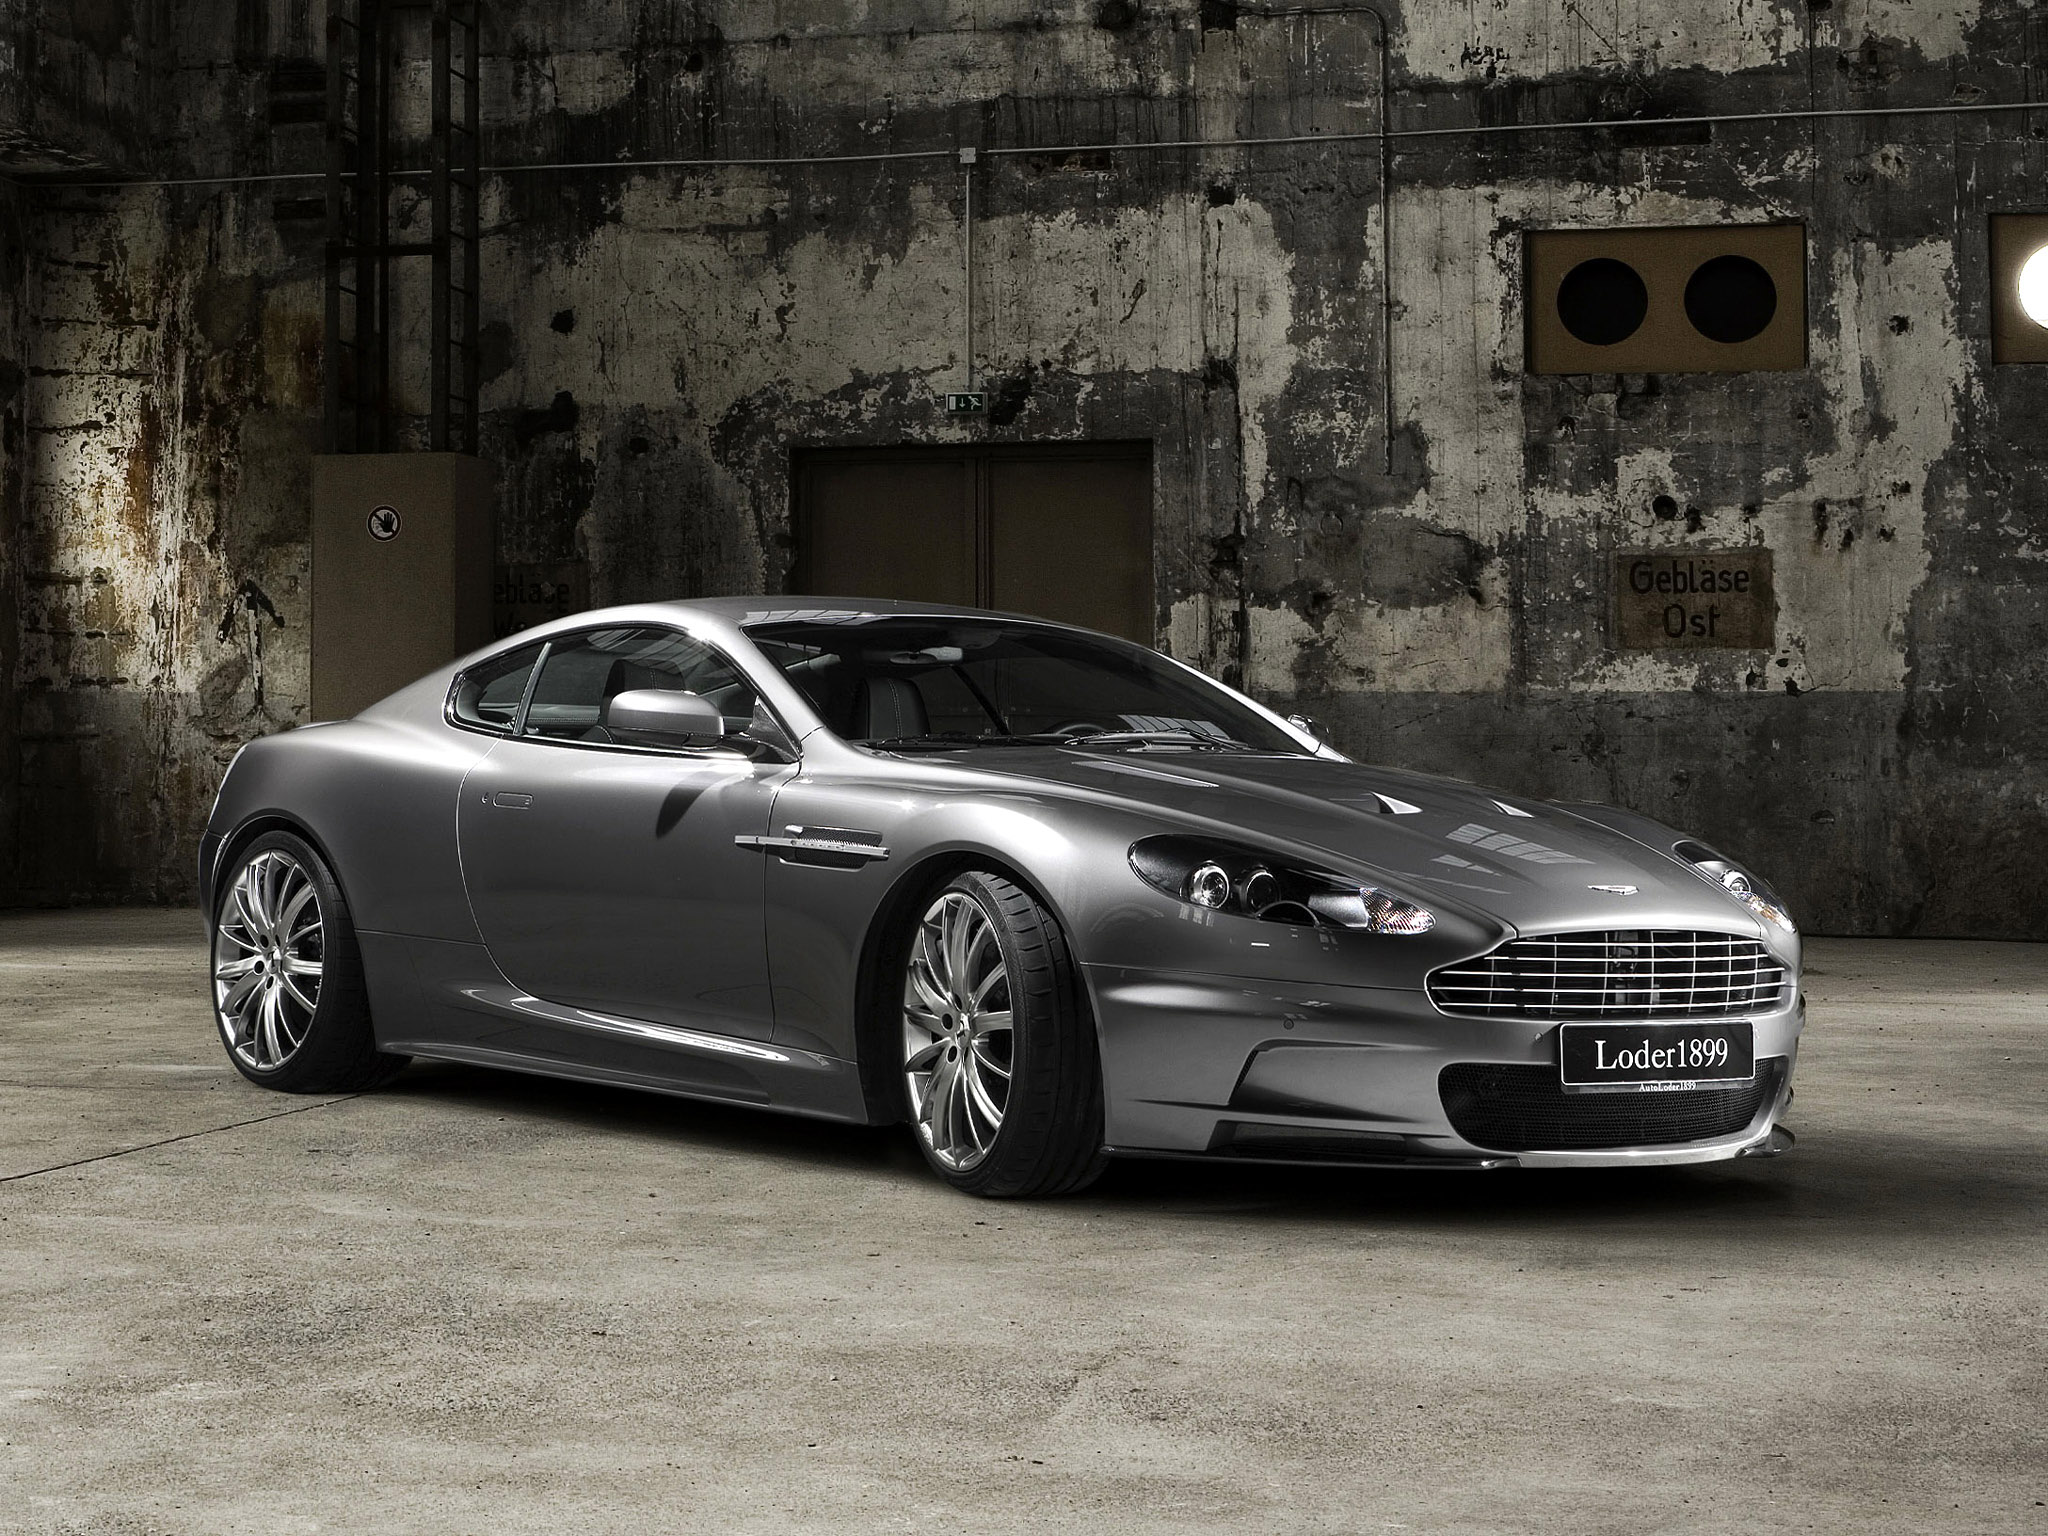 aston martin dbs classic cars. Black Bedroom Furniture Sets. Home Design Ideas